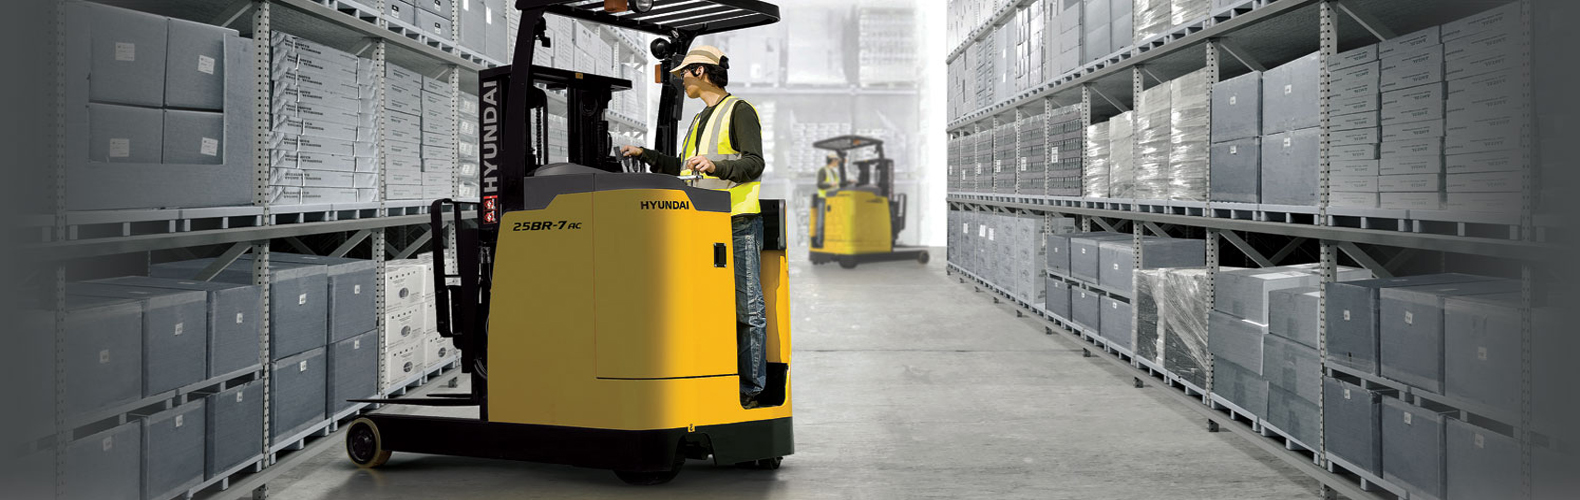 Reach Truck training in Calgary